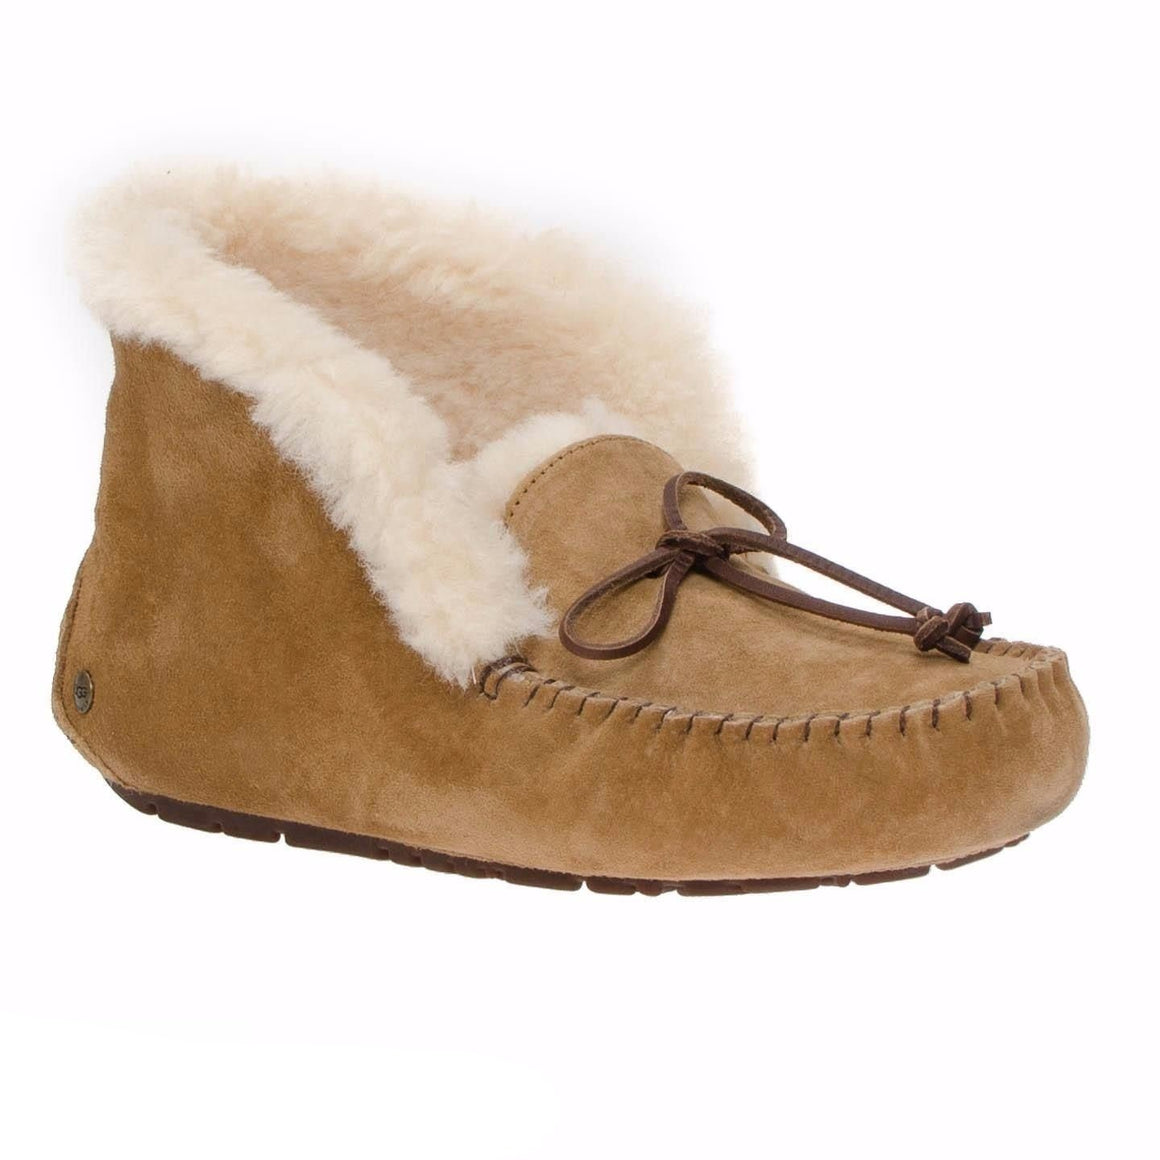 UGG Alena Chestnut Slippers